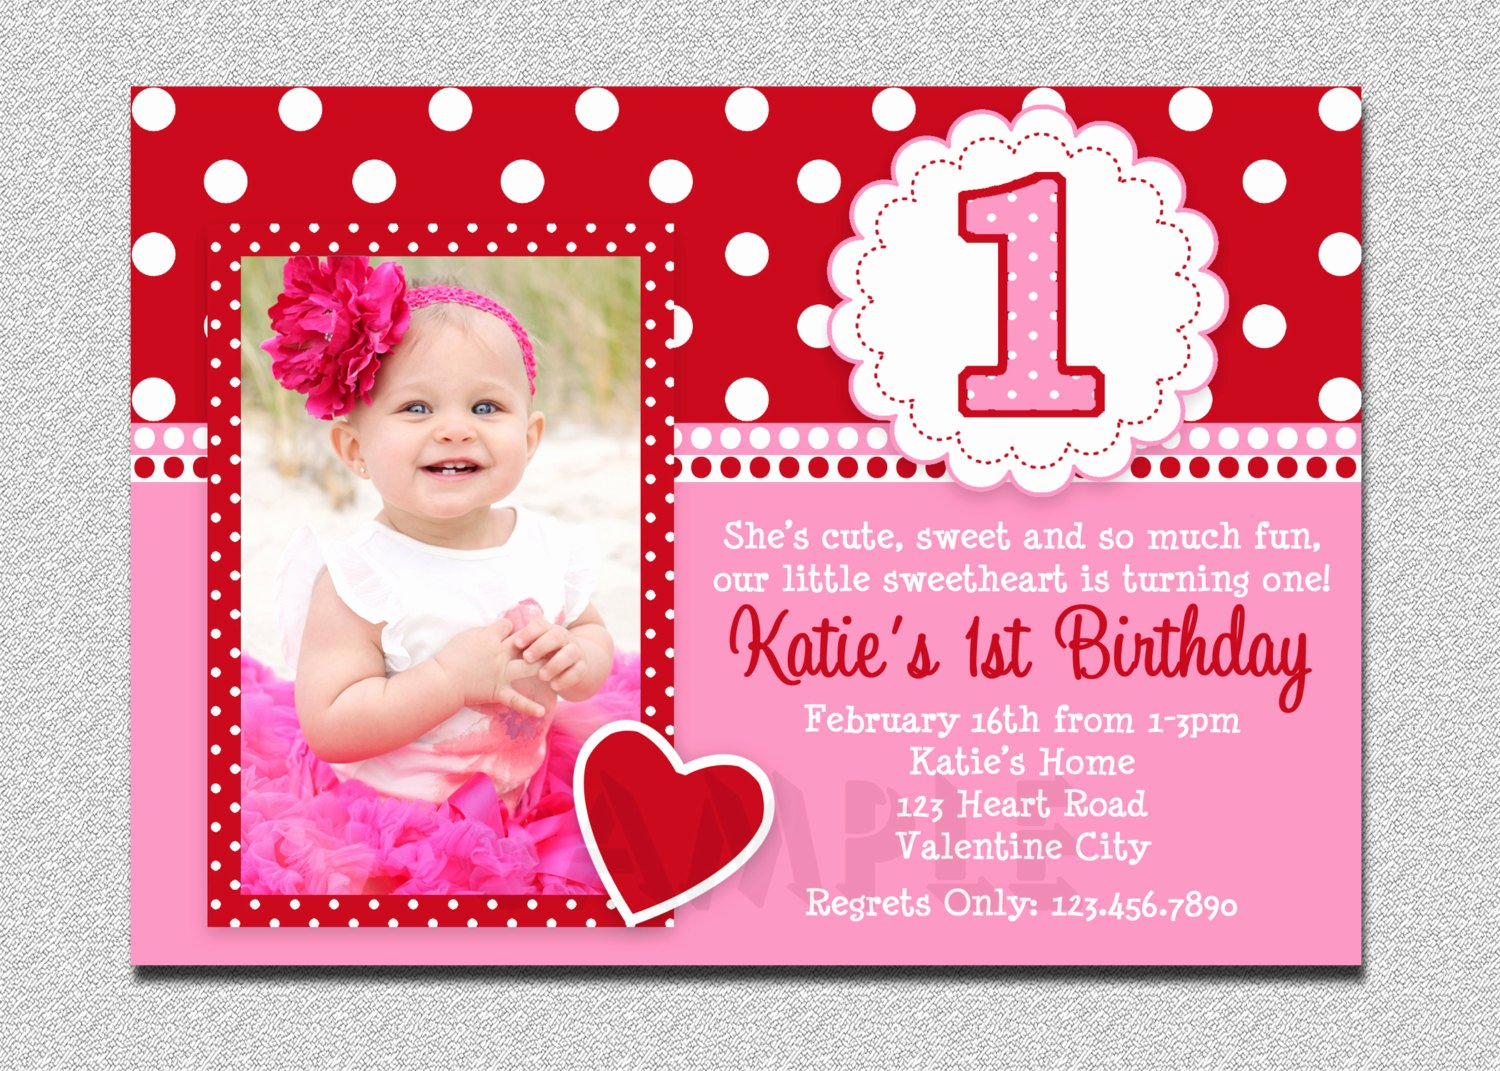 Free Printable Invitations Templates Best Of Free Printable 1st Birthday Invitations Girl – Free